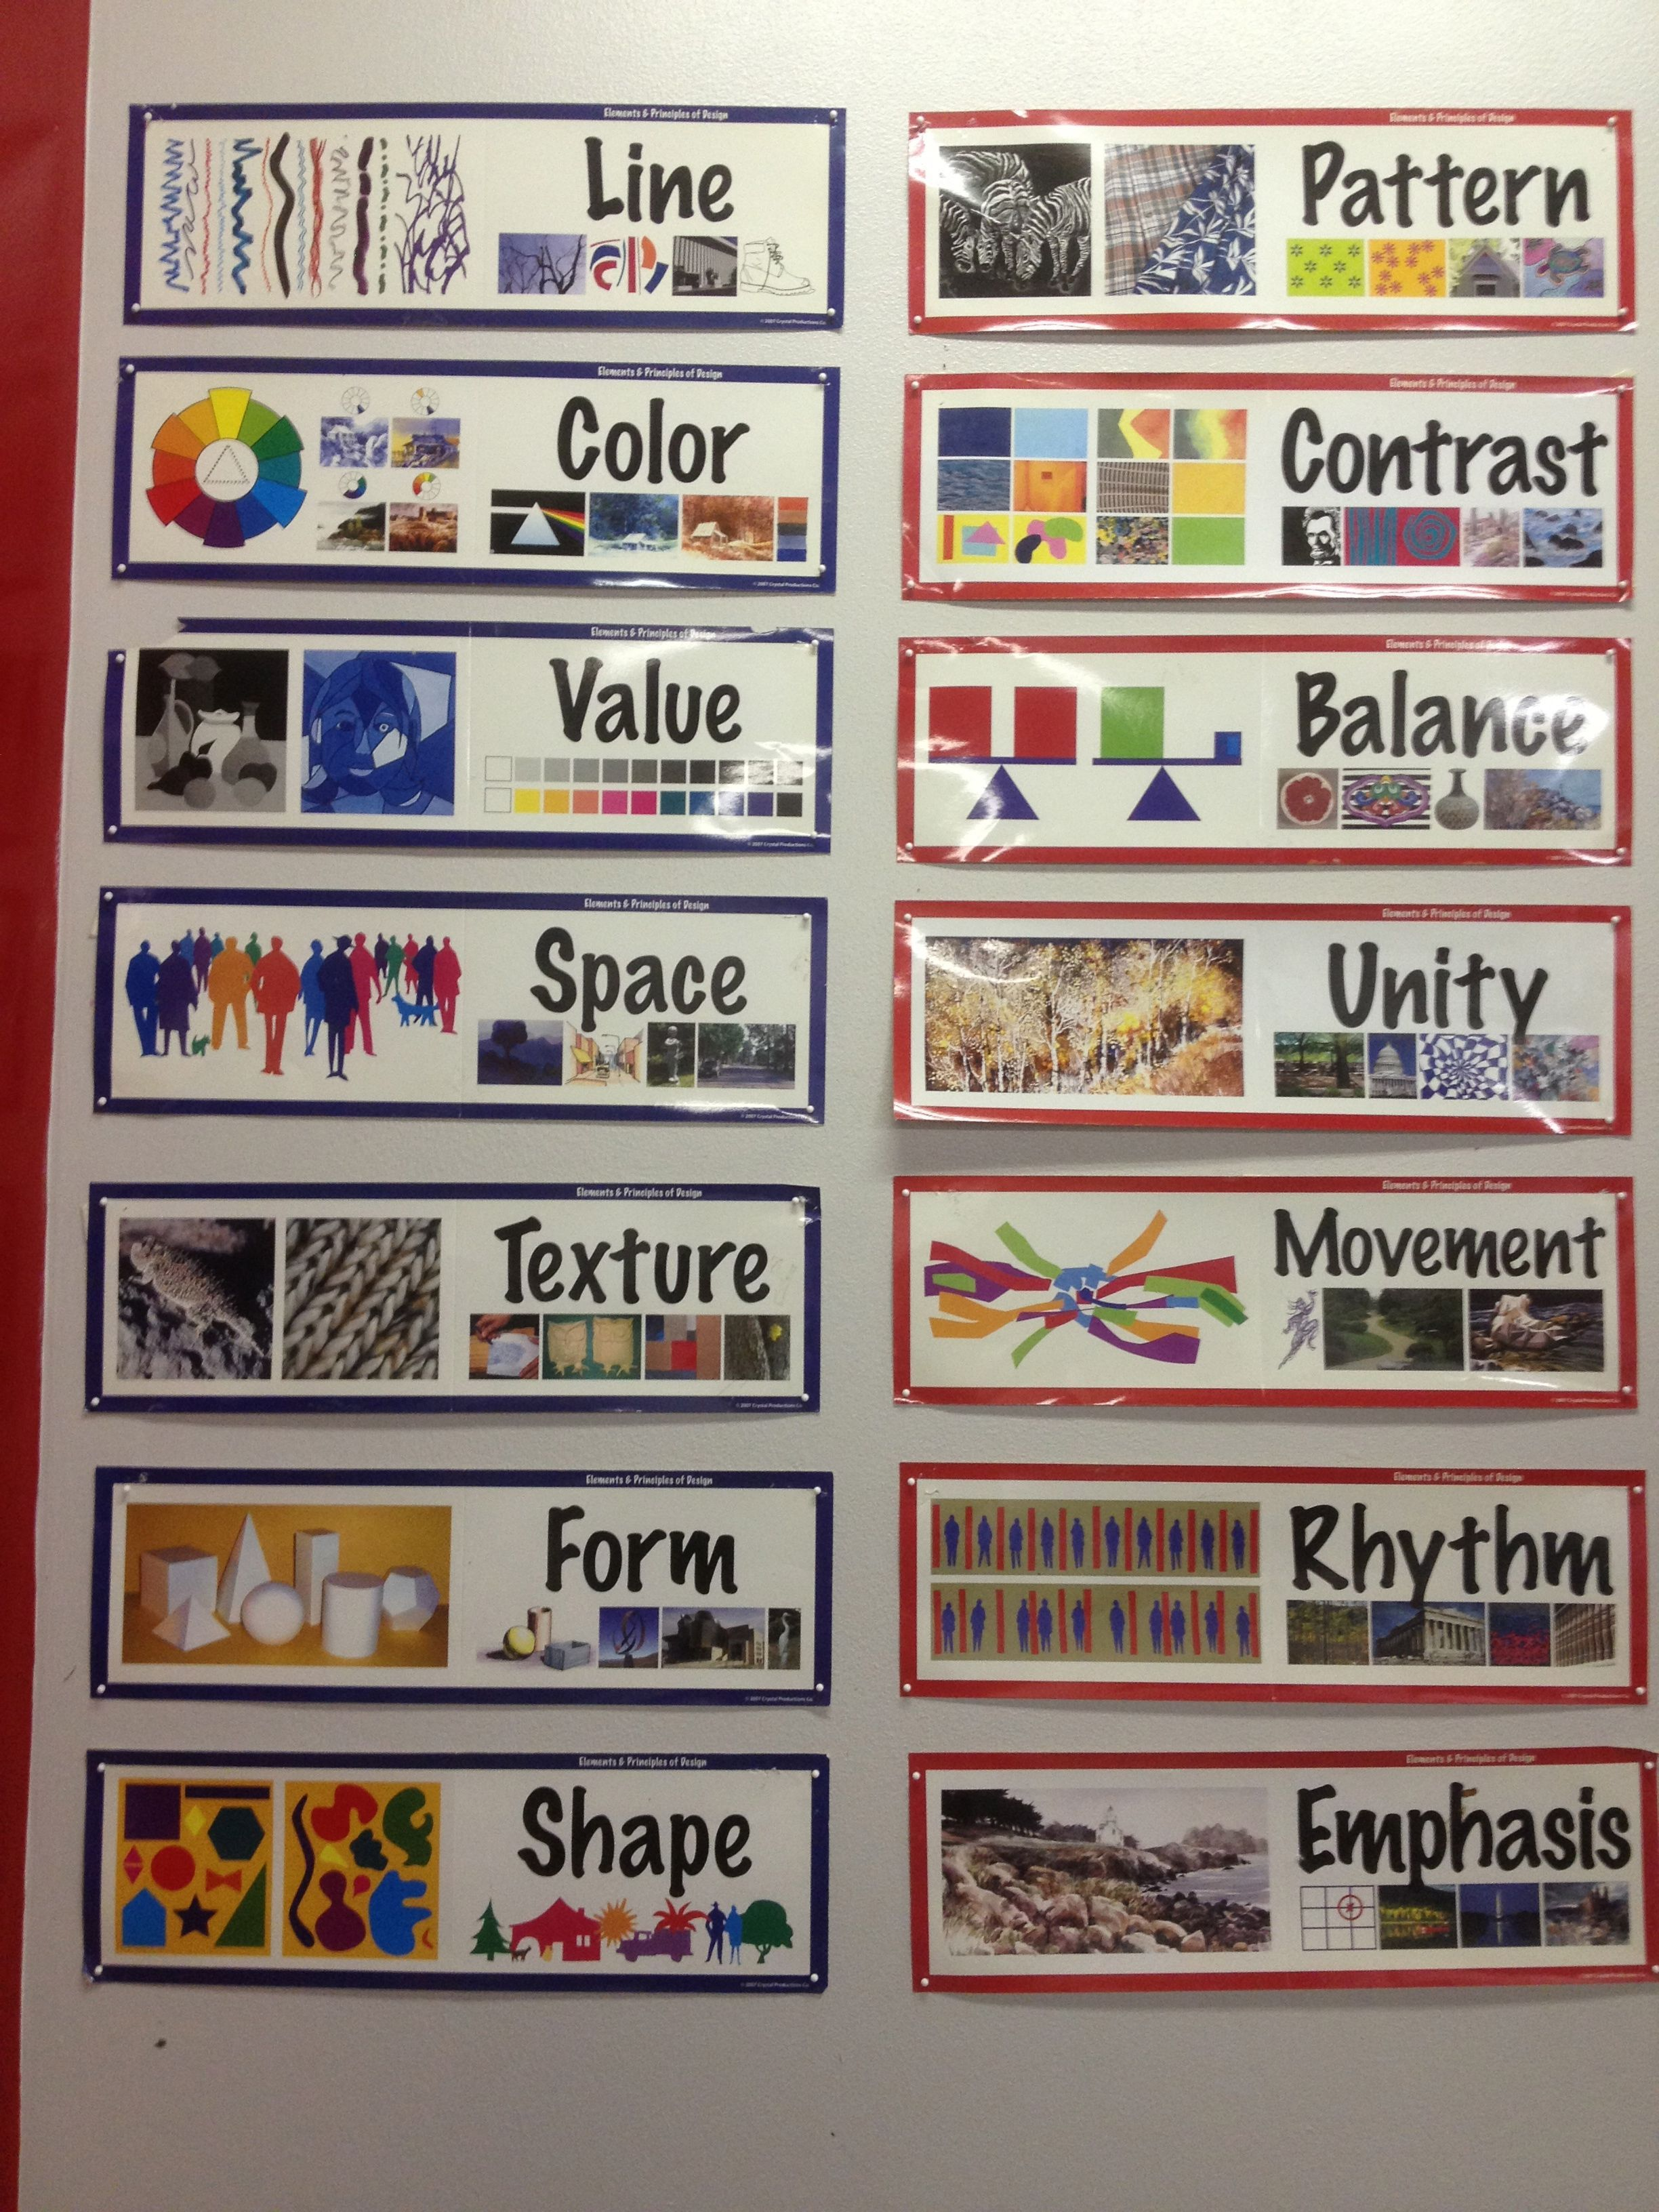 principles and elements of art posters nicely displayed within the art room space. Be sure to keep them at the eye level of the students you are working with so they can see them well.